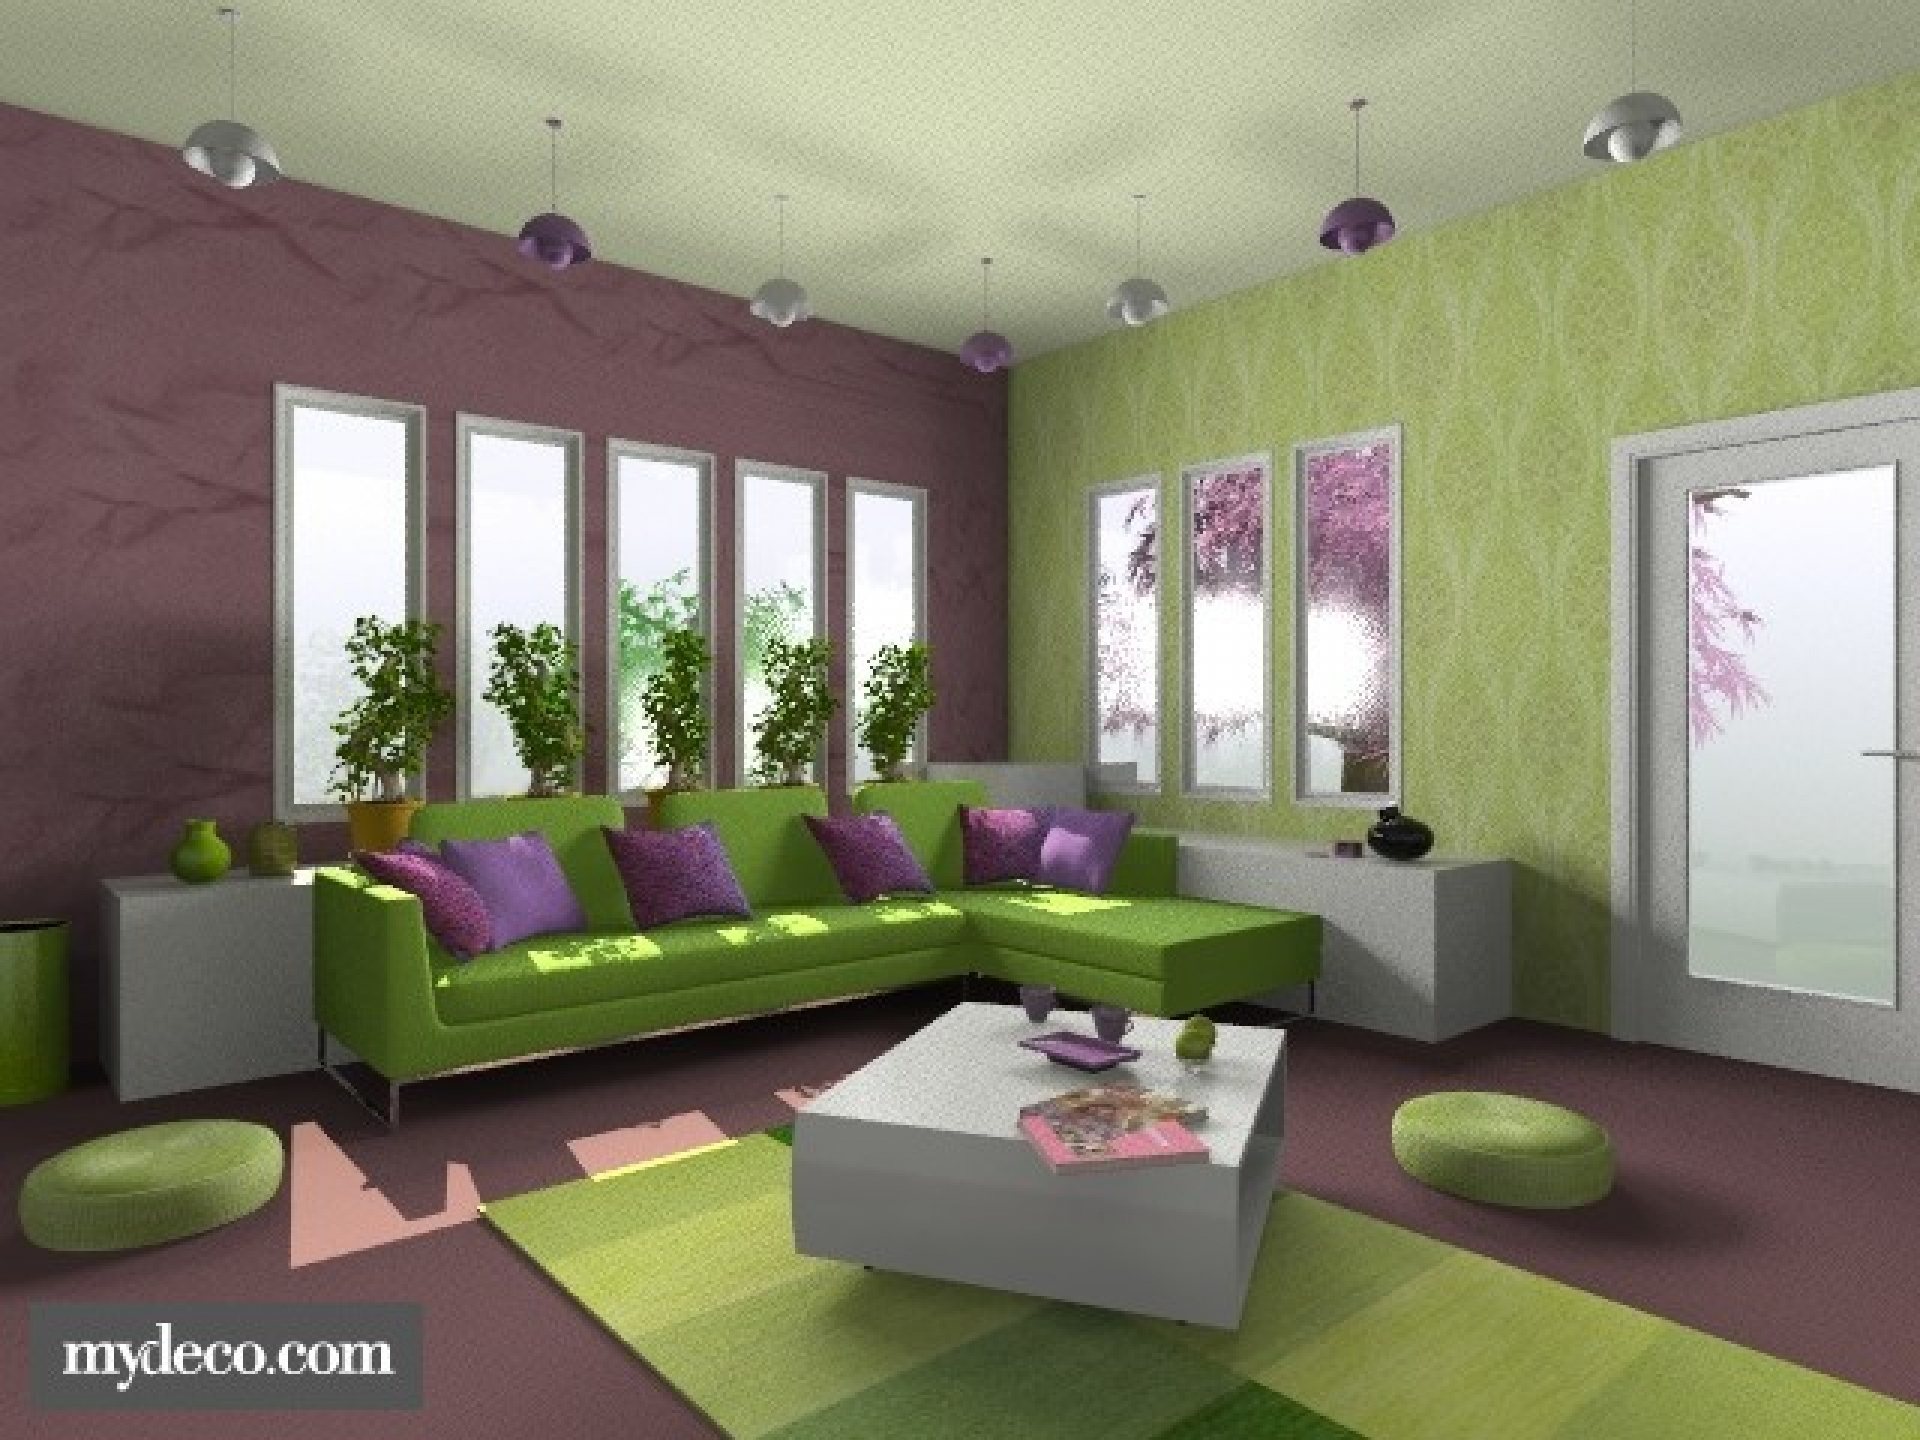 purple room color scheme photo - 3